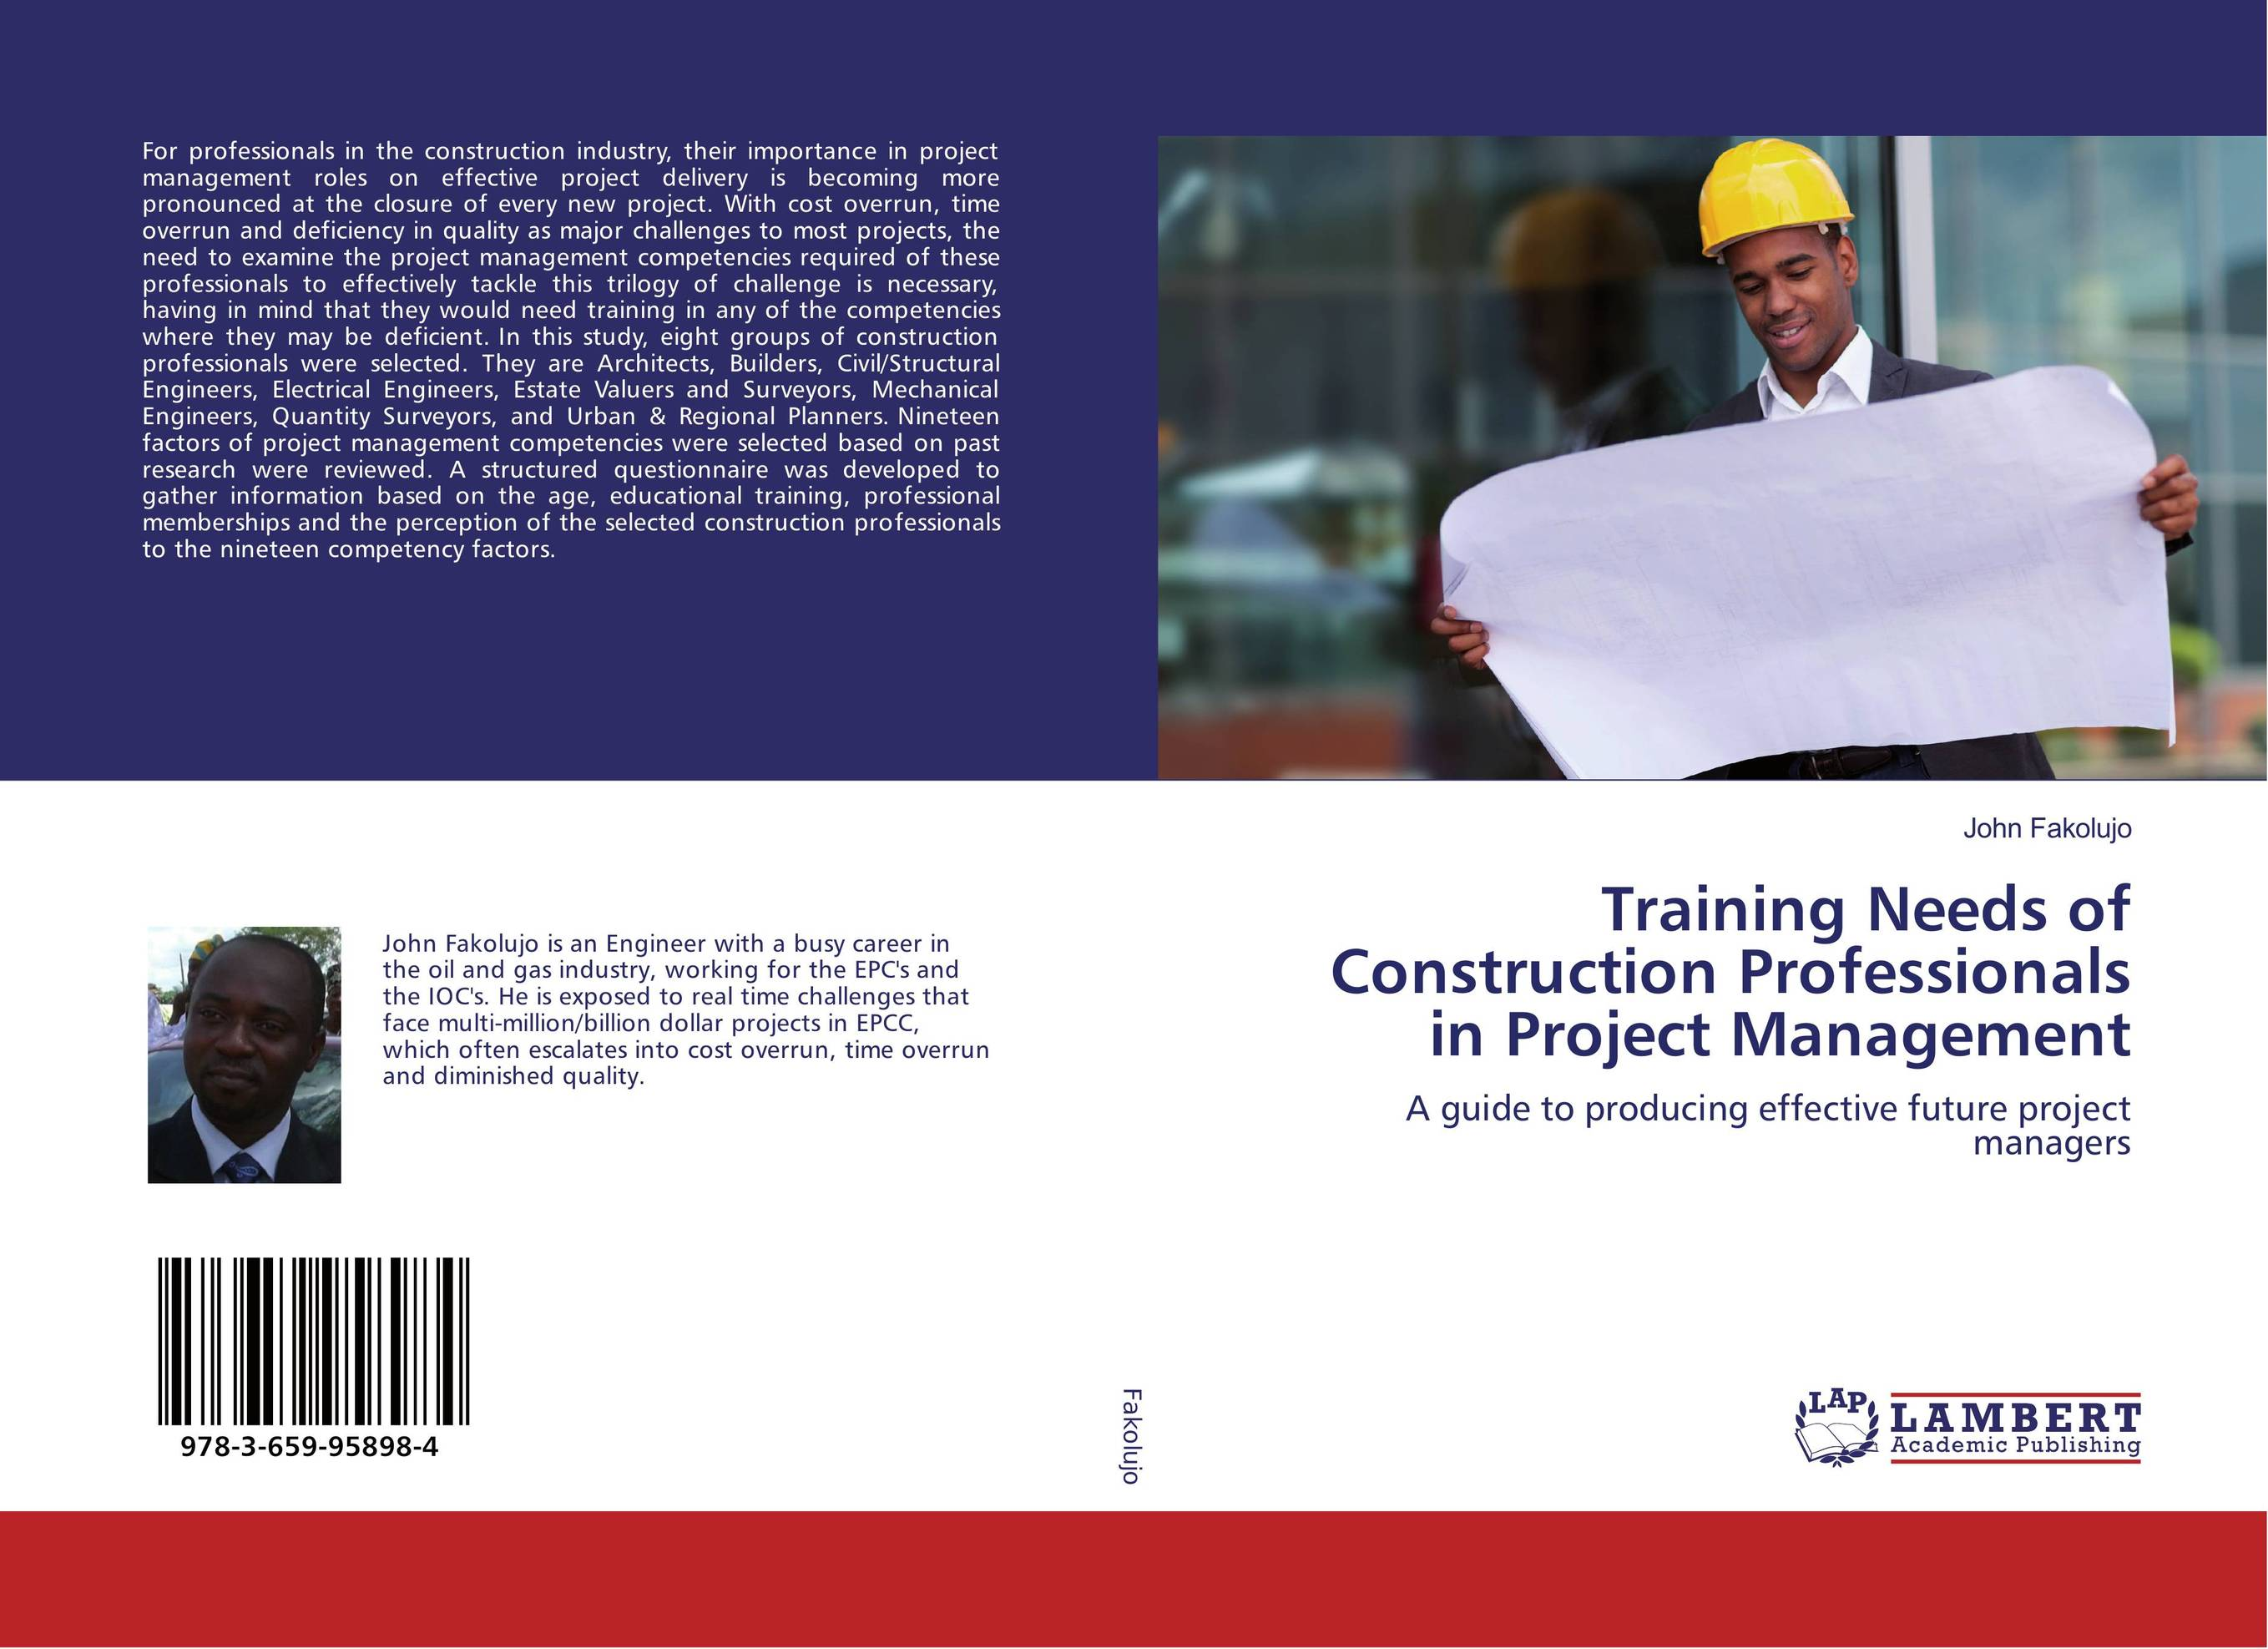 project and professionalism management Project management should contribute positively and should never enact corruption if you think you're better than that, be better than that if, however, you enable the voids in their understanding or professionalism, you're not only harming them, but everyone else invested in your enterprise.